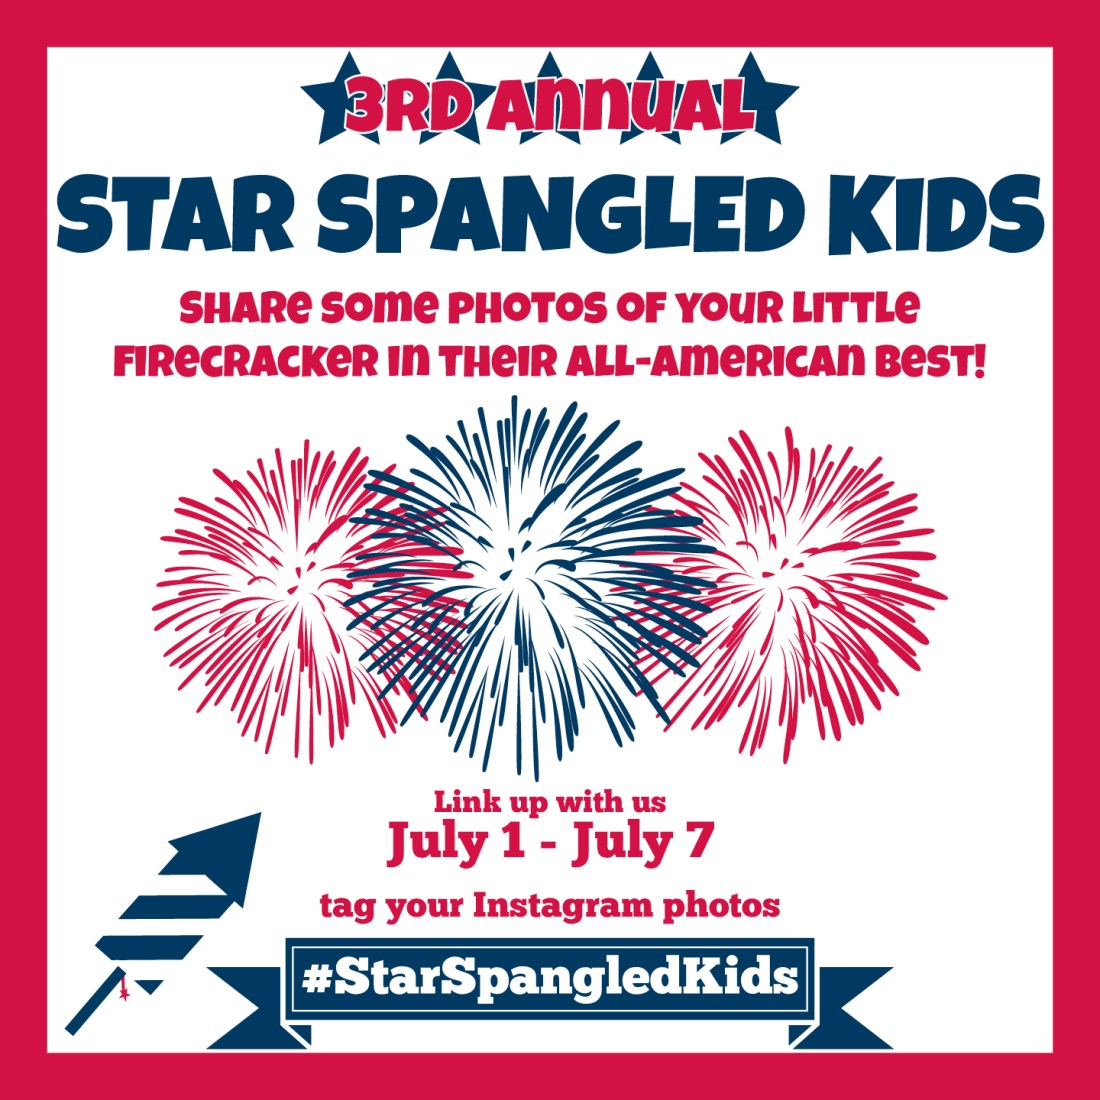 Star Spangled Kids 2017 [#StarSpangledKids]